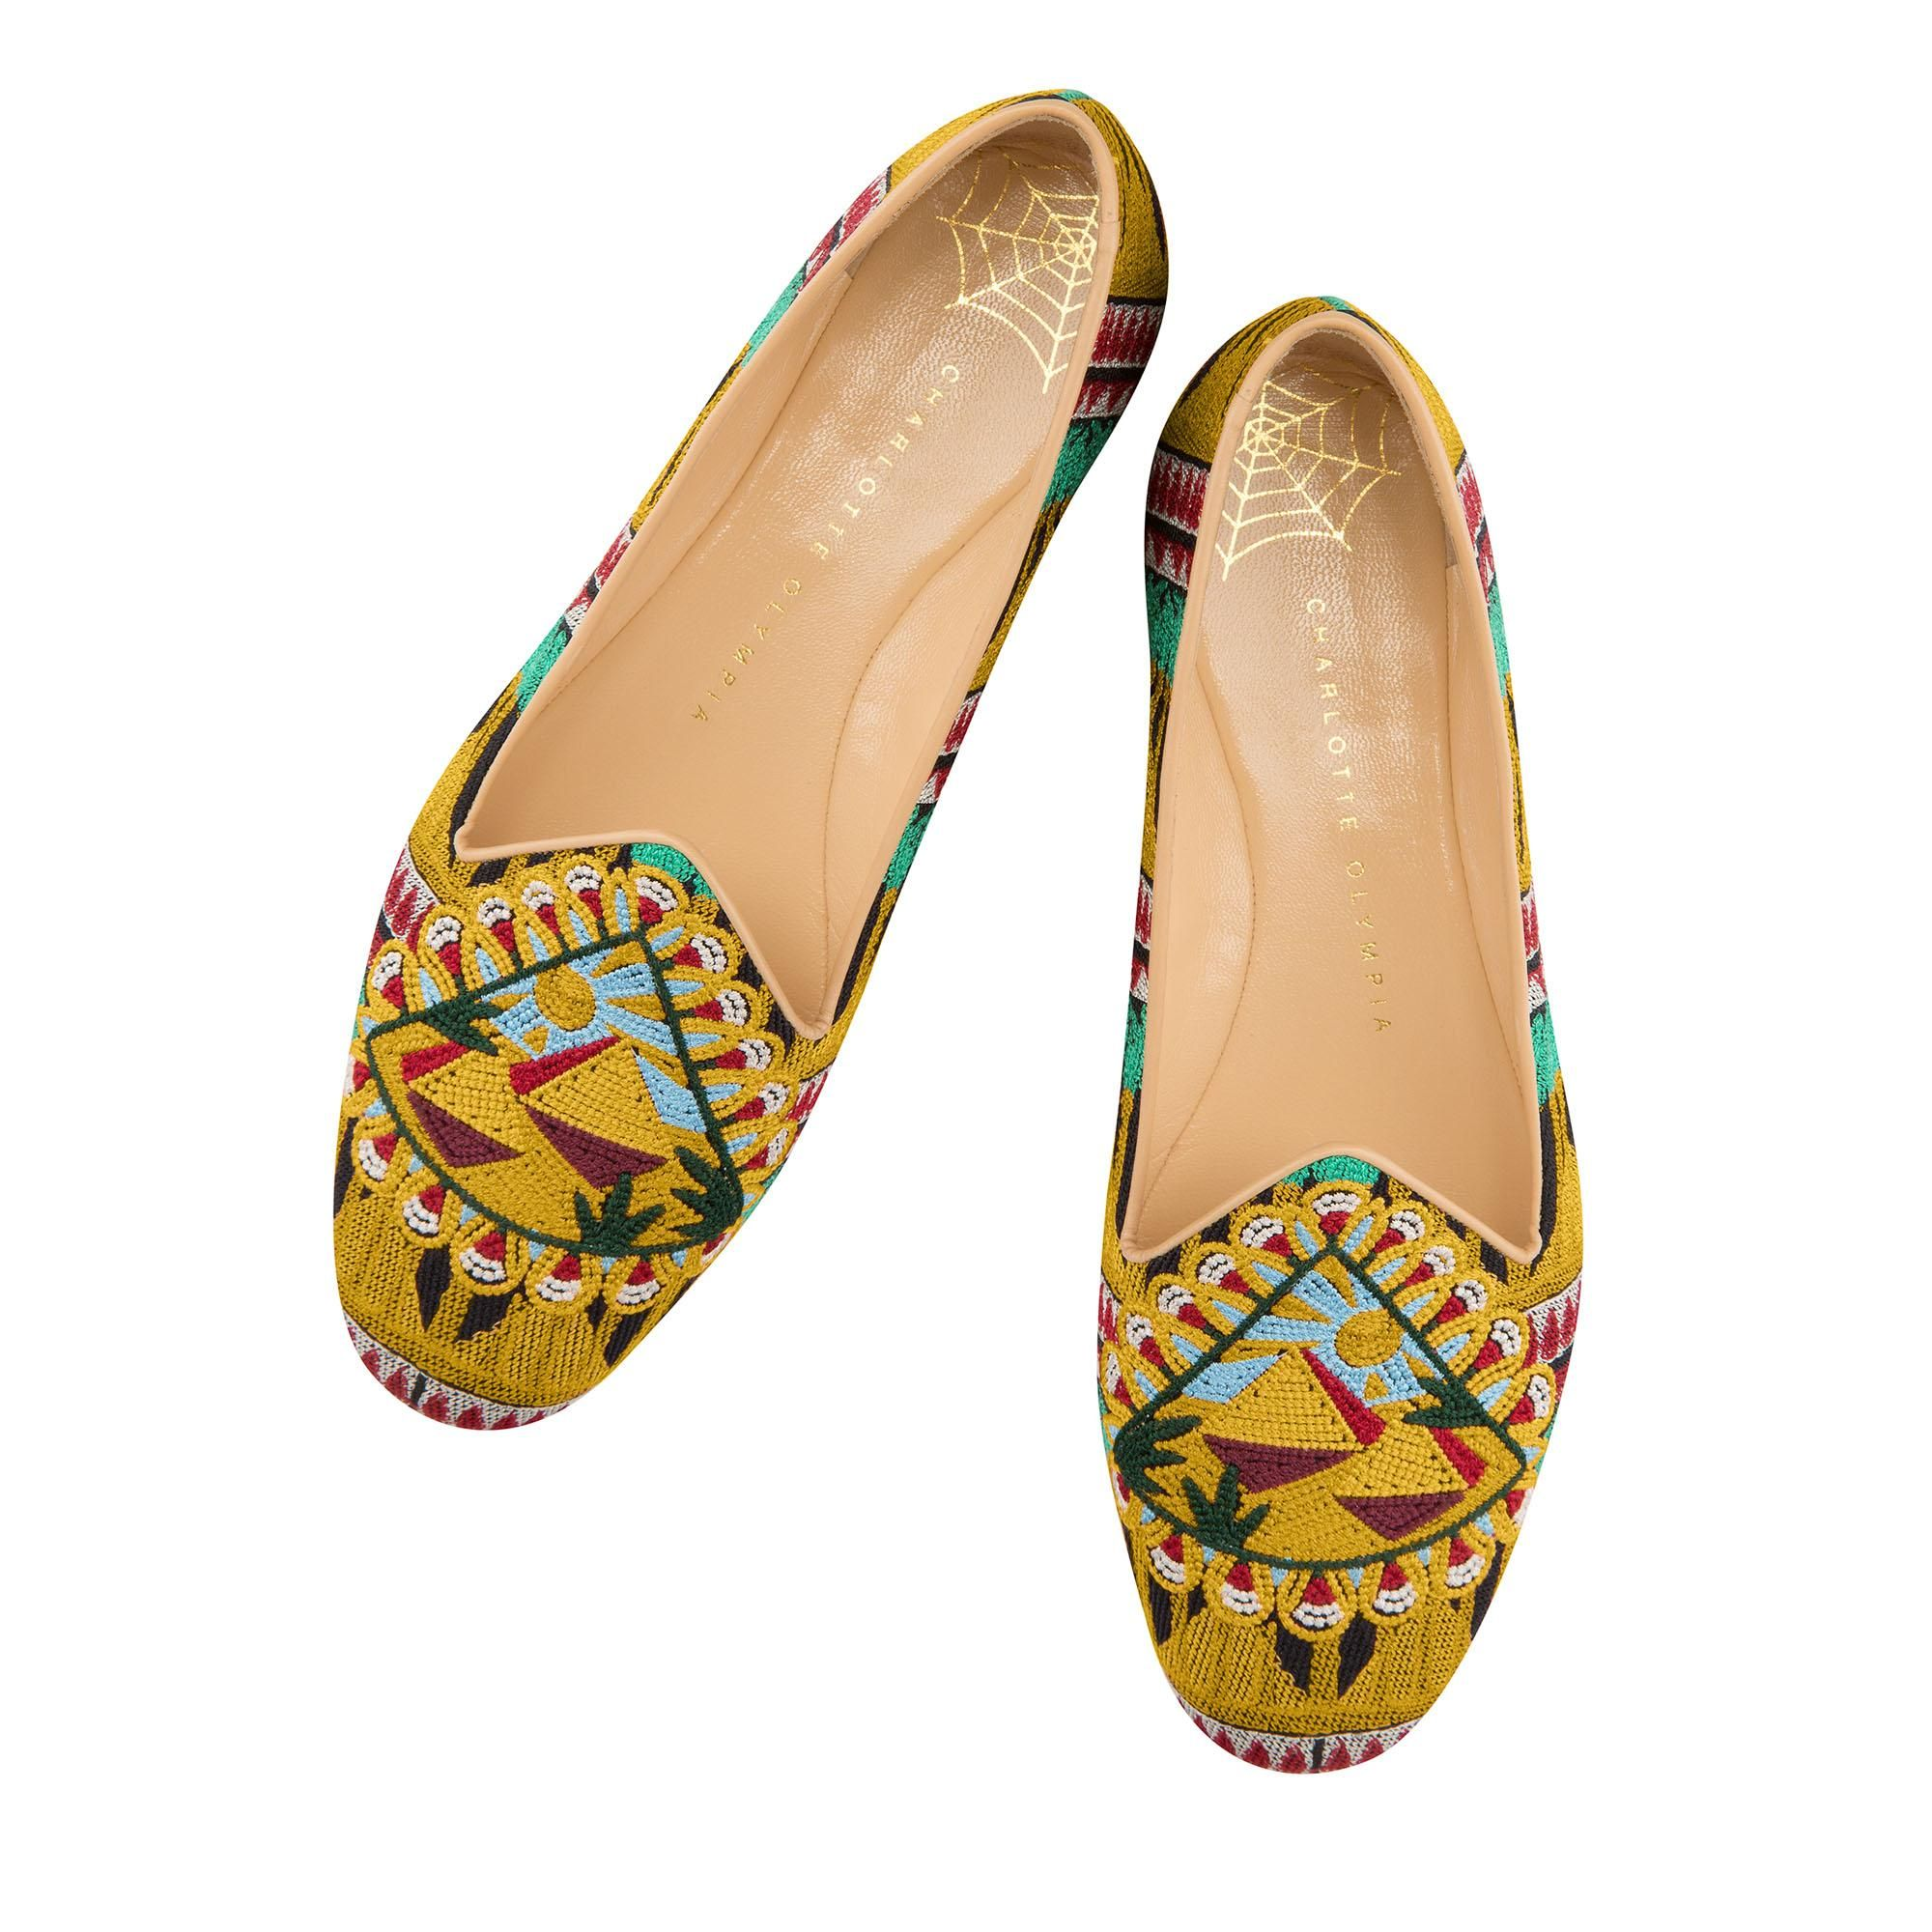 The Pyramid Slipper brings a touch of ancient mystery to your look. In a rich, colourful embroidery pattern, the pyramids cast their magnificent shadows under the blazing sun. Charlotte Olympia SHOES